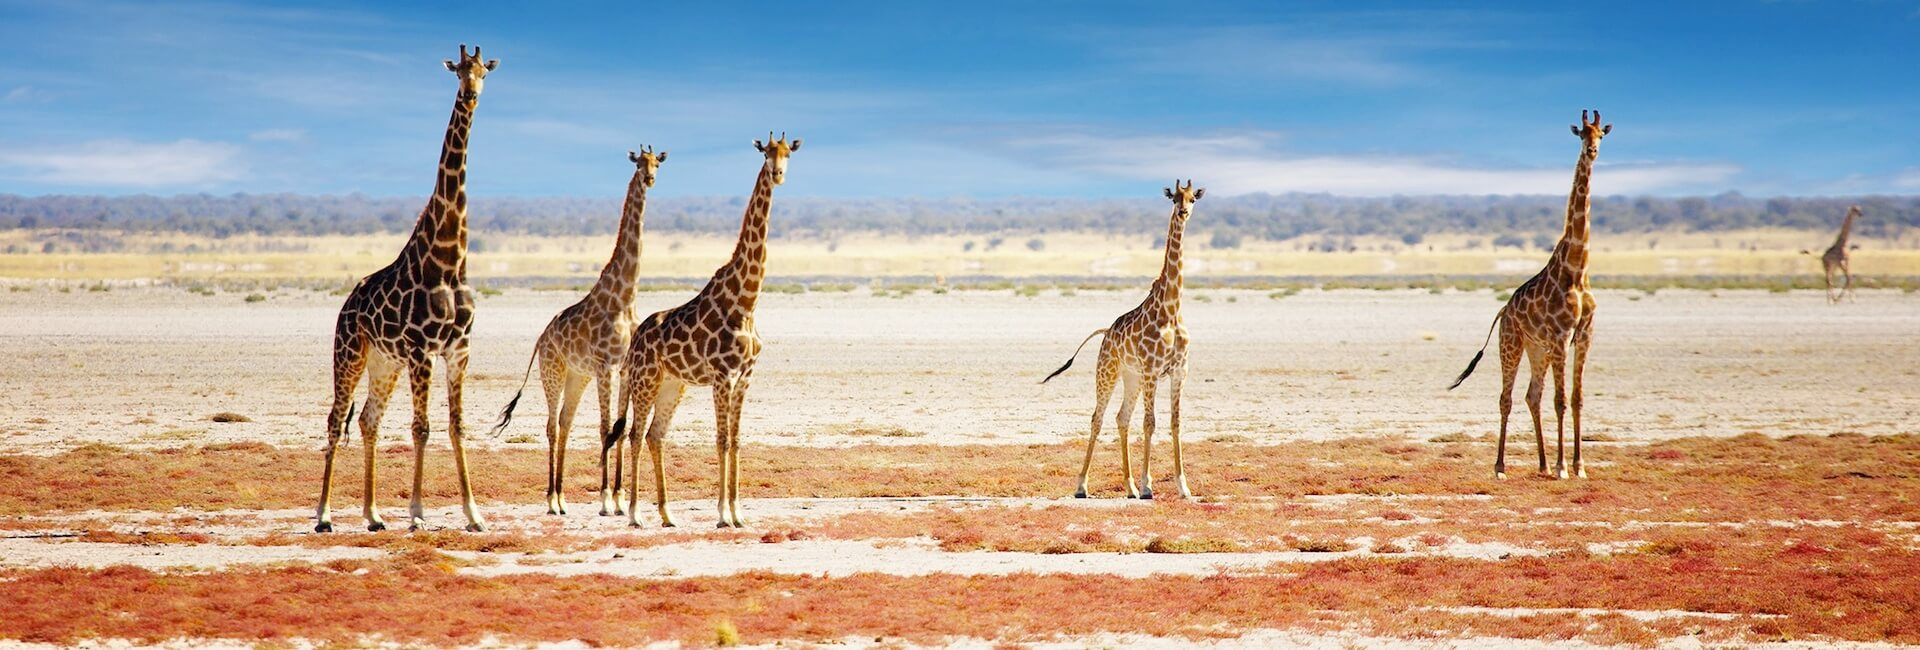 namibian discovery